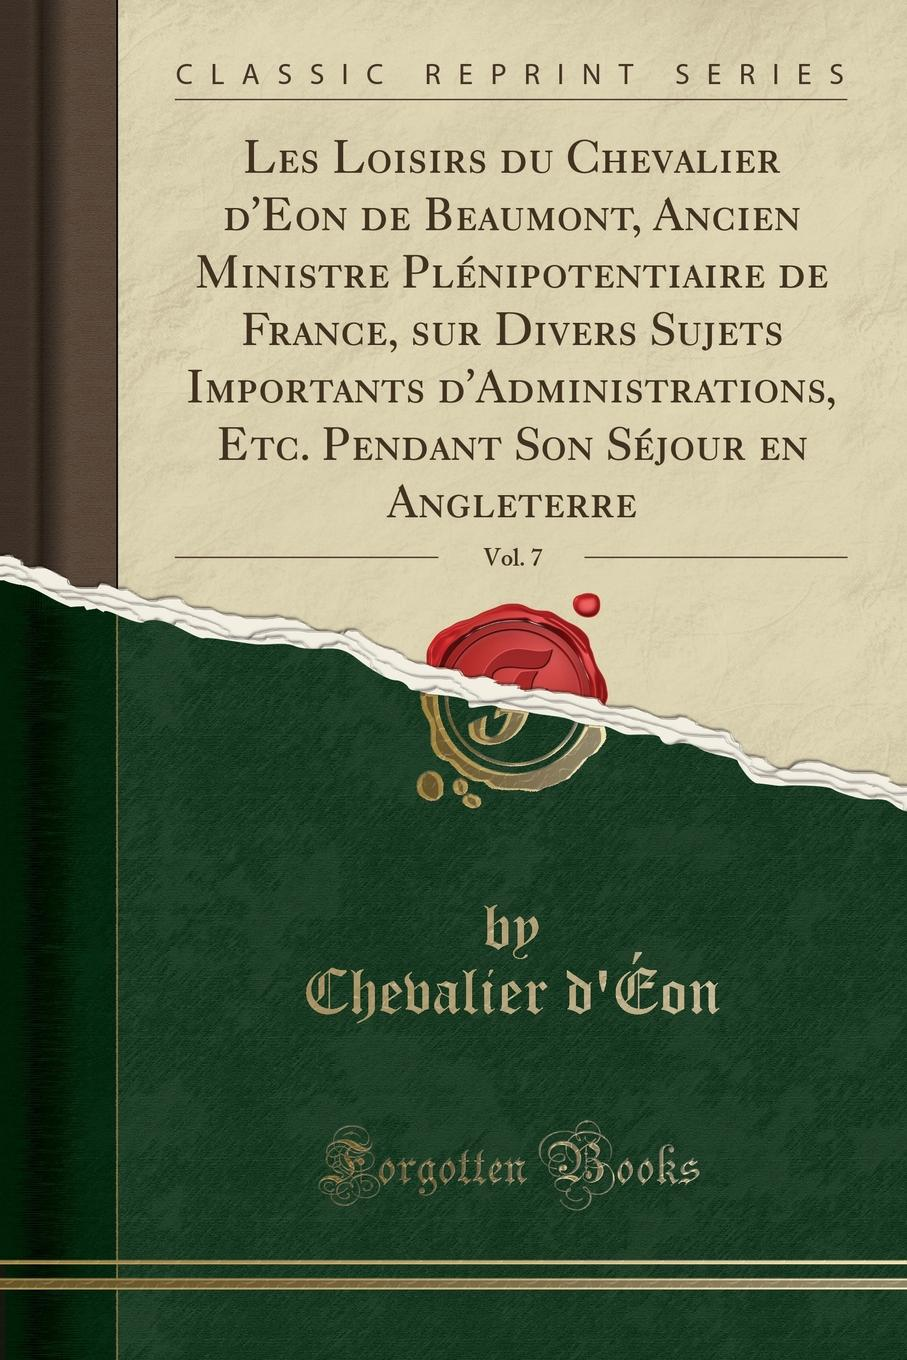 Les Loisirs du Chevalier d.Eon de Beaumont, Ancien Ministre Plenipotentiaire de France, sur Divers Sujets Importants d.Administrations, Etc. Pendant Son Sejour en Angleterre, Vol. 7 (Classic Reprint) Excerpt from Les Loisirs du Chevalier d'Eon de Beaumont, Ancien...